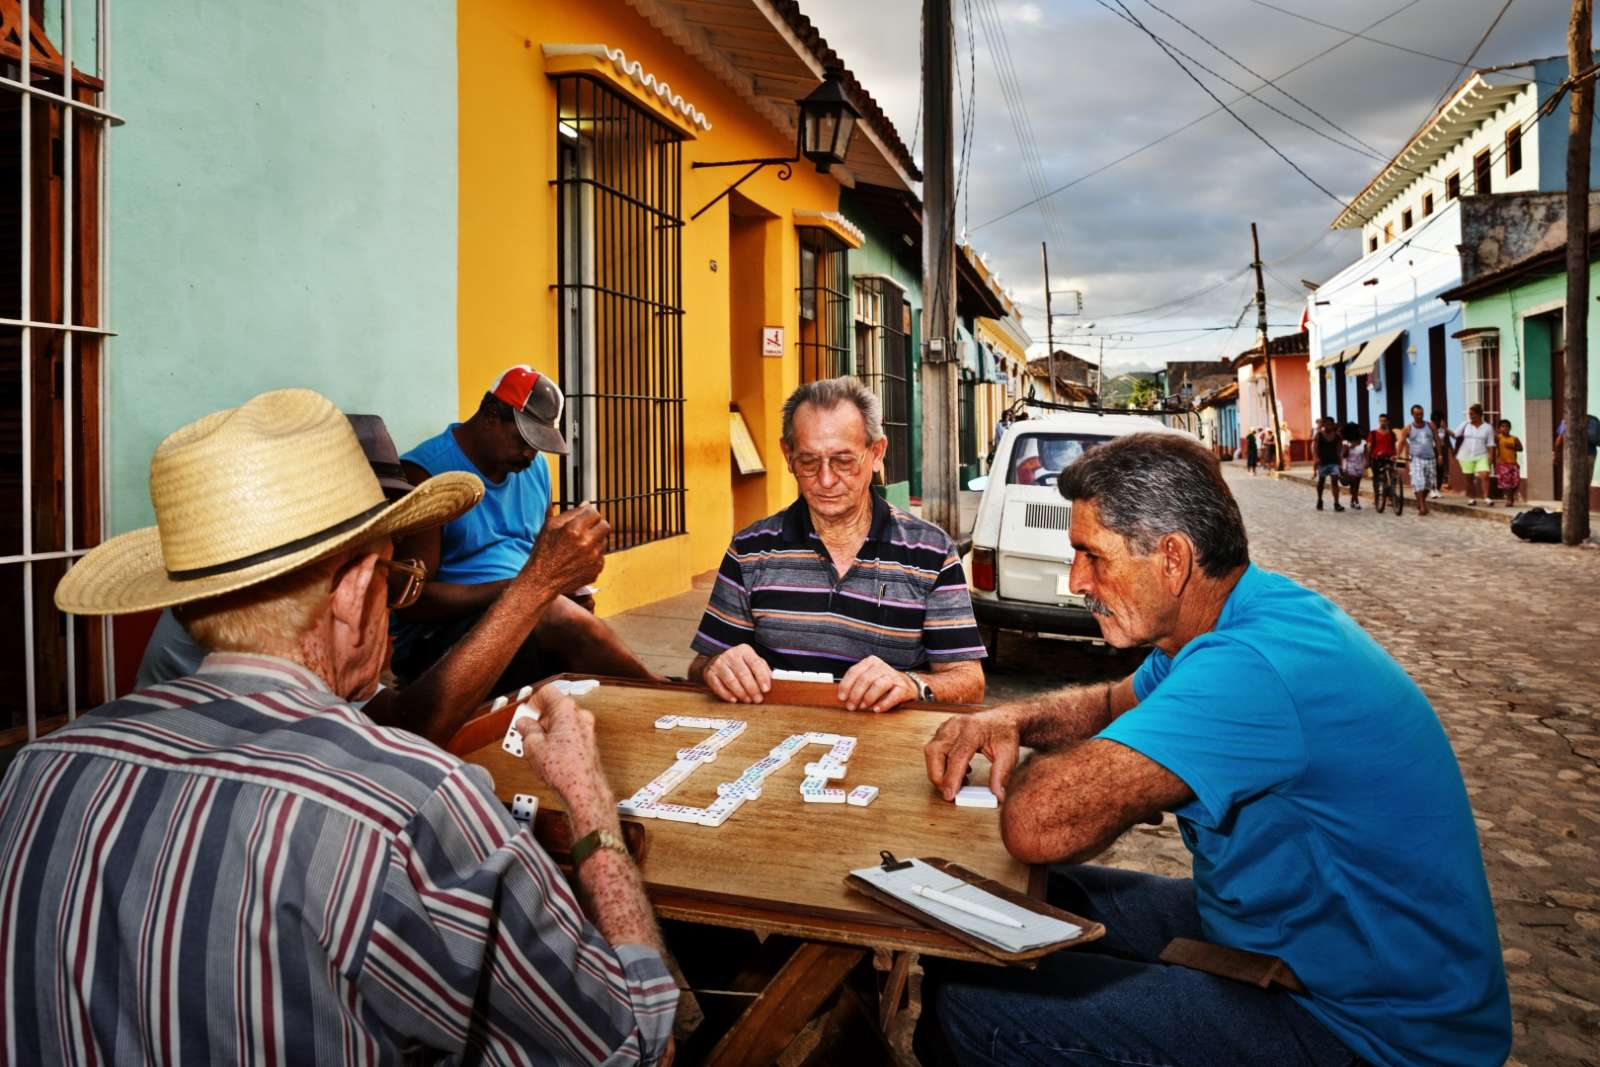 Men playing dominos in Trinidad, Cuba